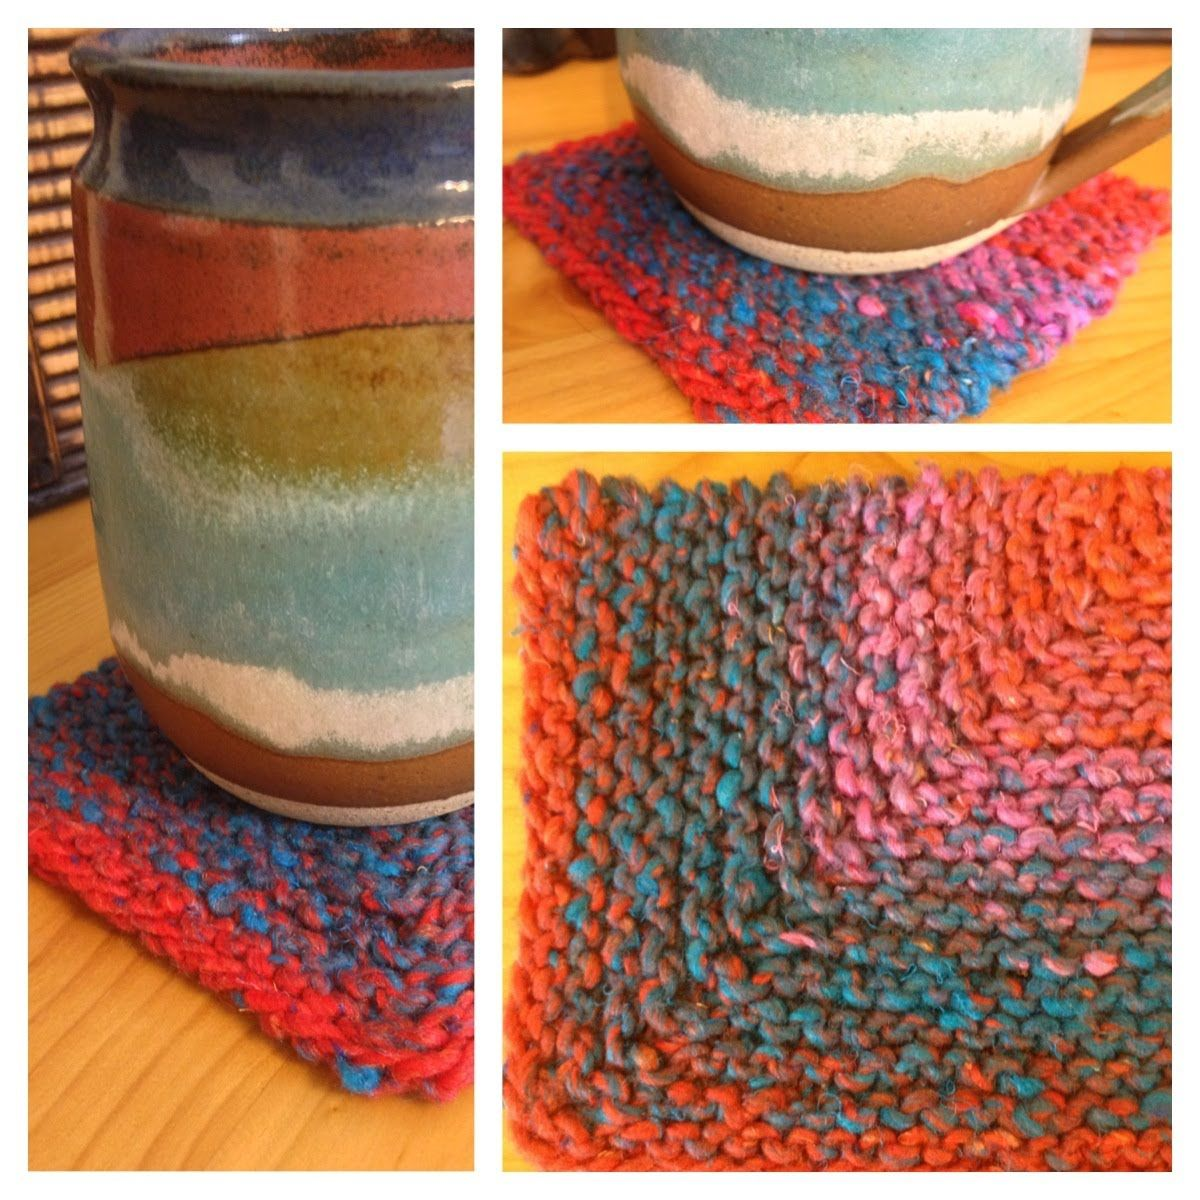 How To Knit Mitered Square - Knitting For Beginners